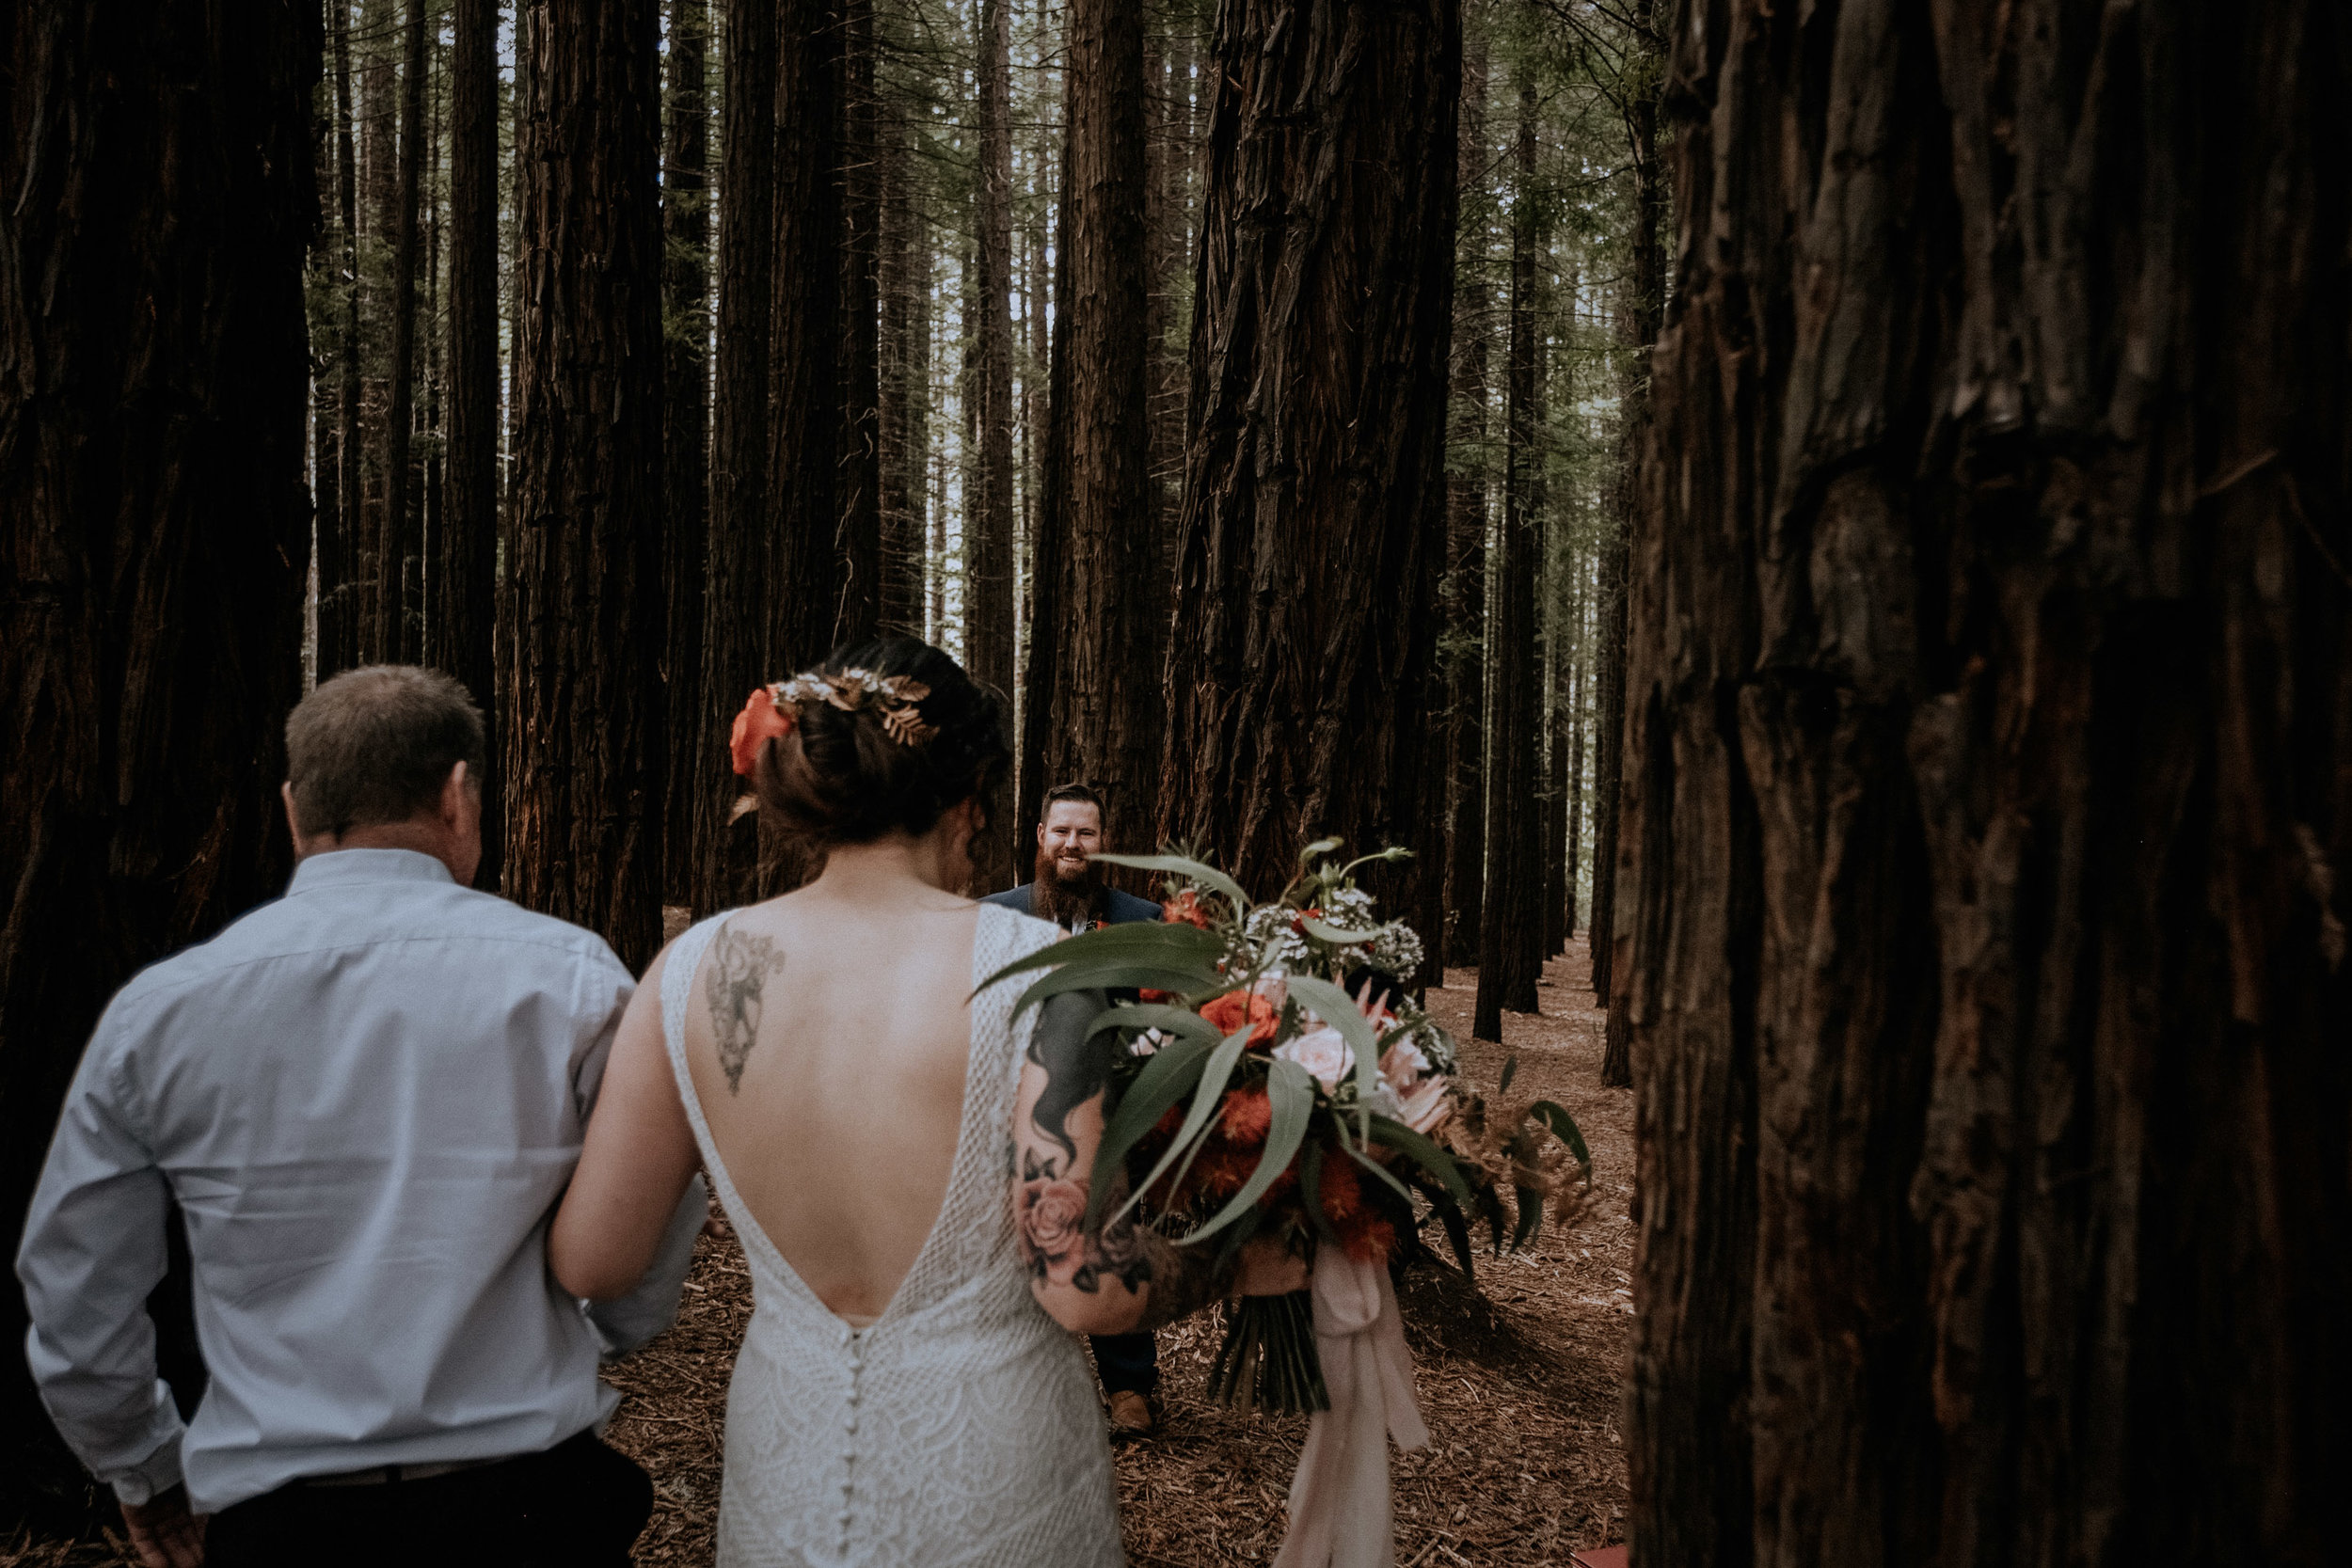 A groom sees his bride for the first time at their small wedding, candidly captured with intimate vibes, in the Redwood Forest in Warburton, near Melbourne